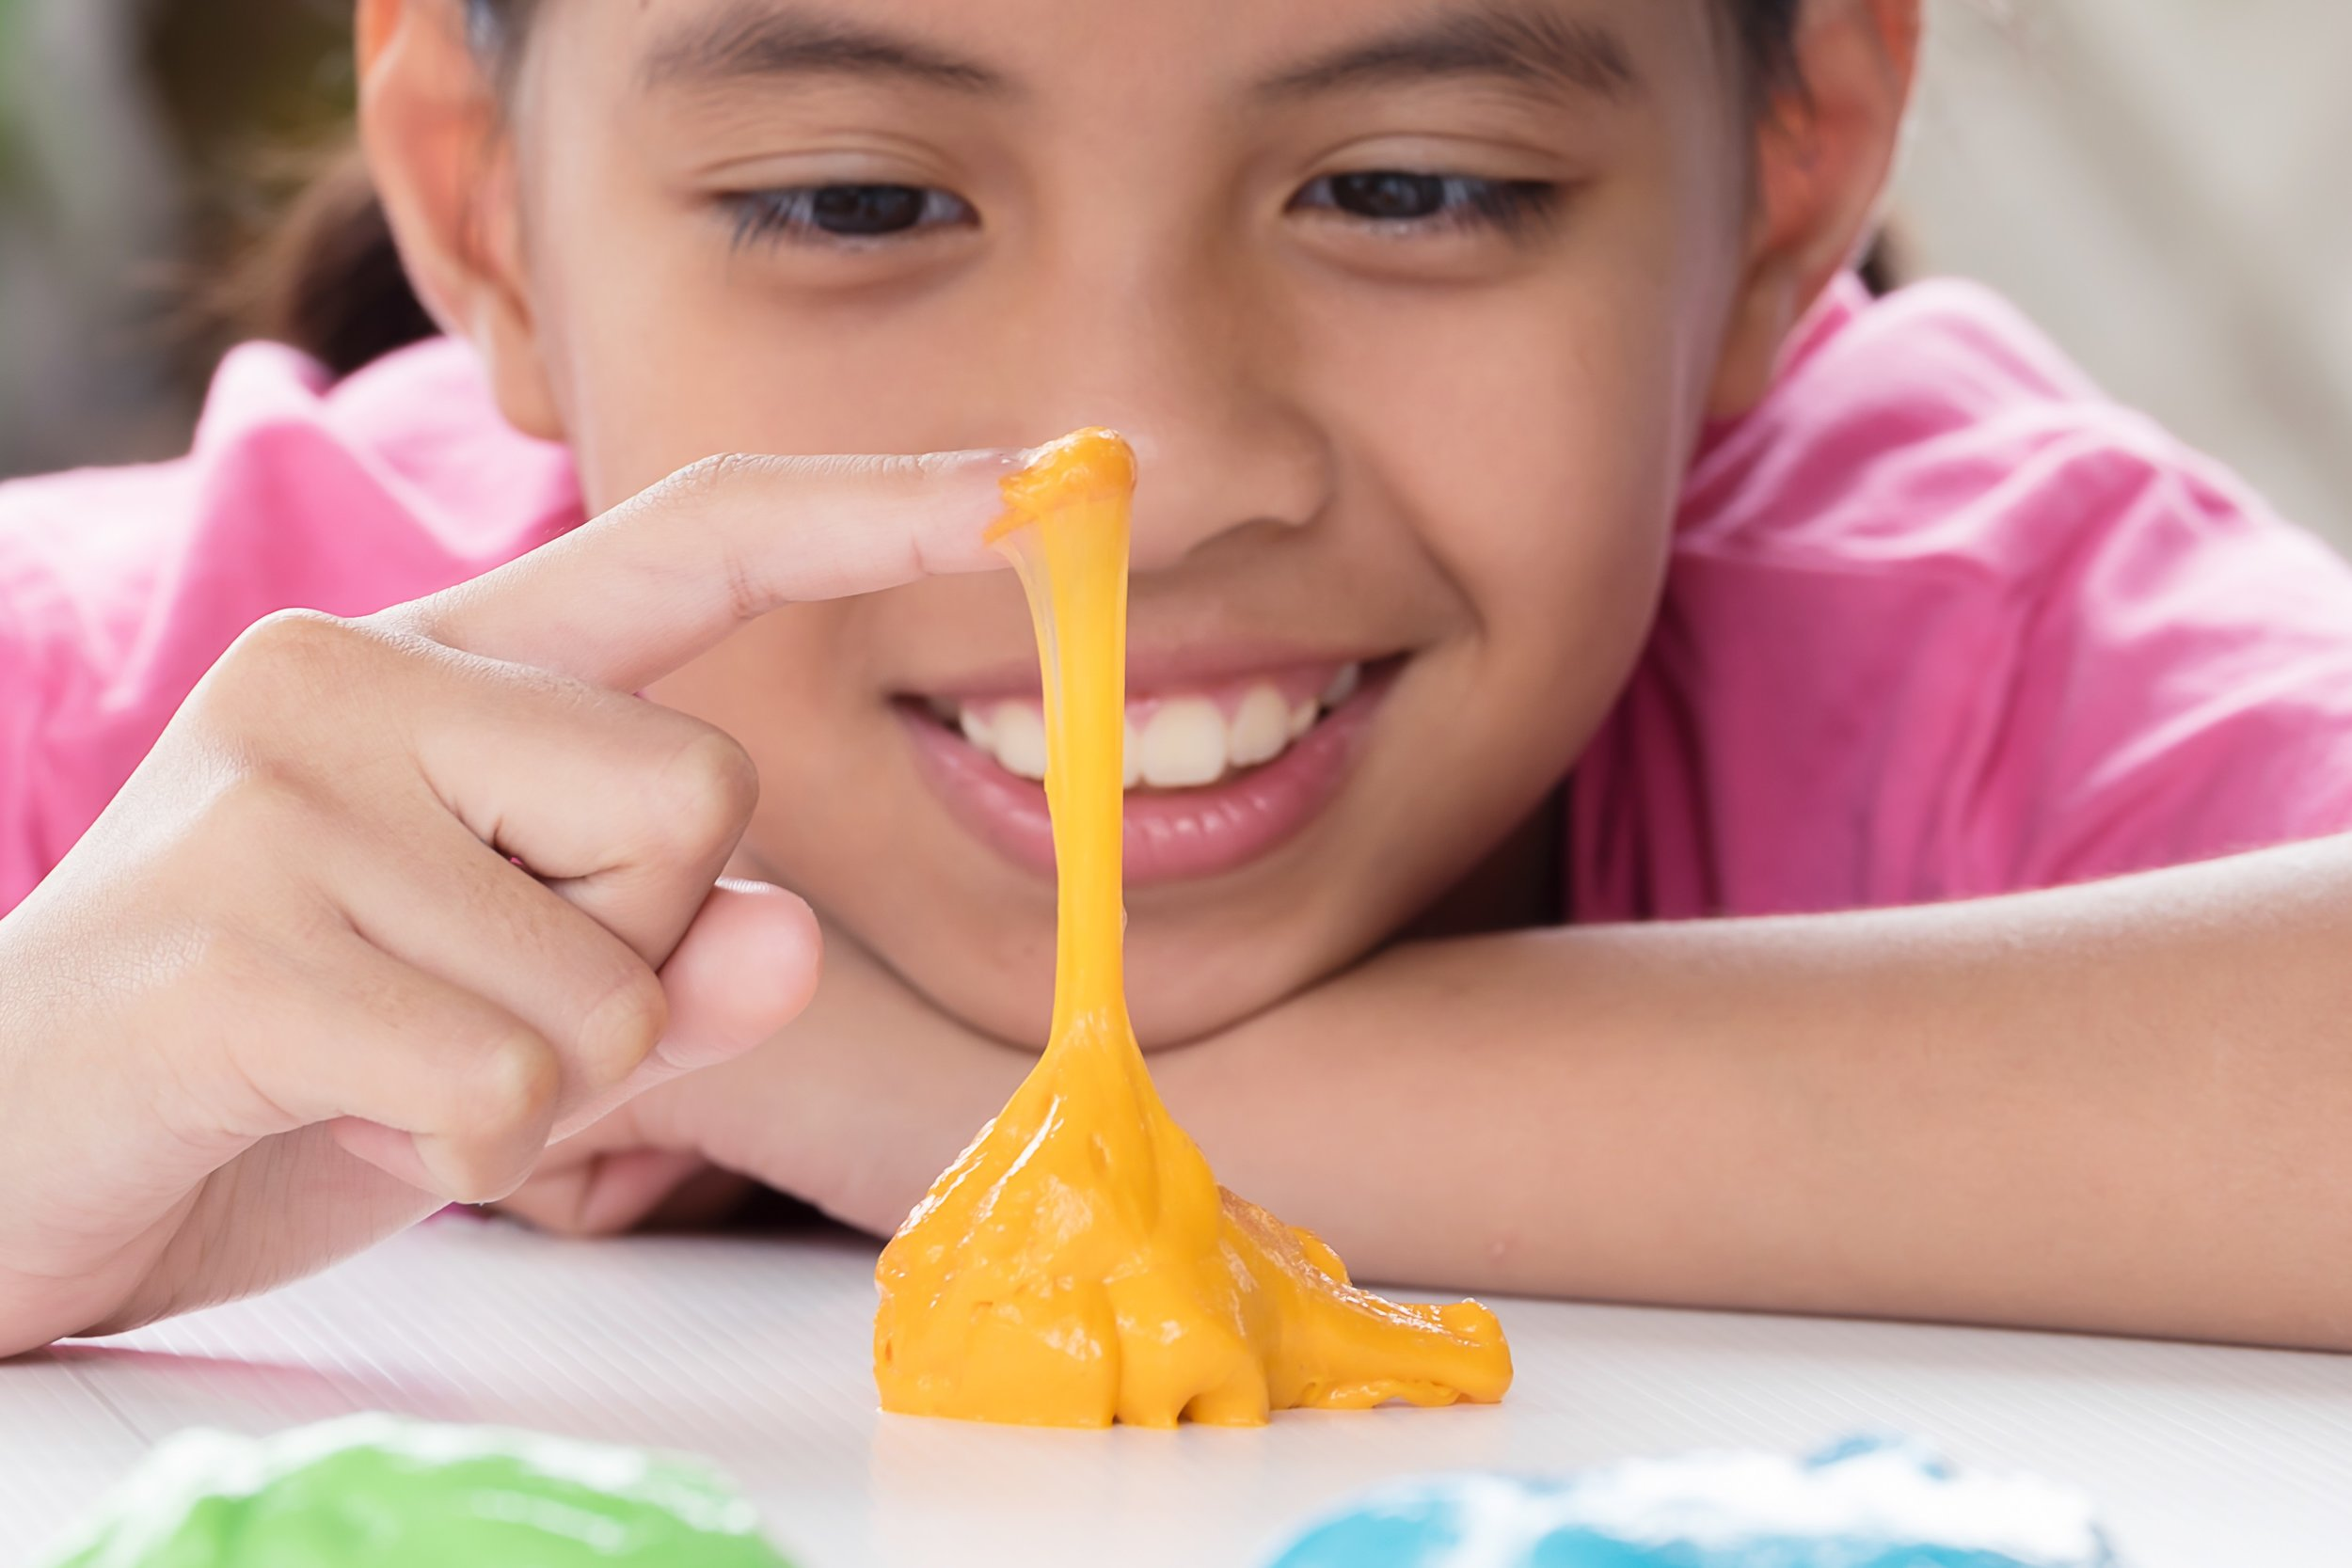 stock-photo-kid-playing-hand-made-toy-called-slime-543019921.jpg